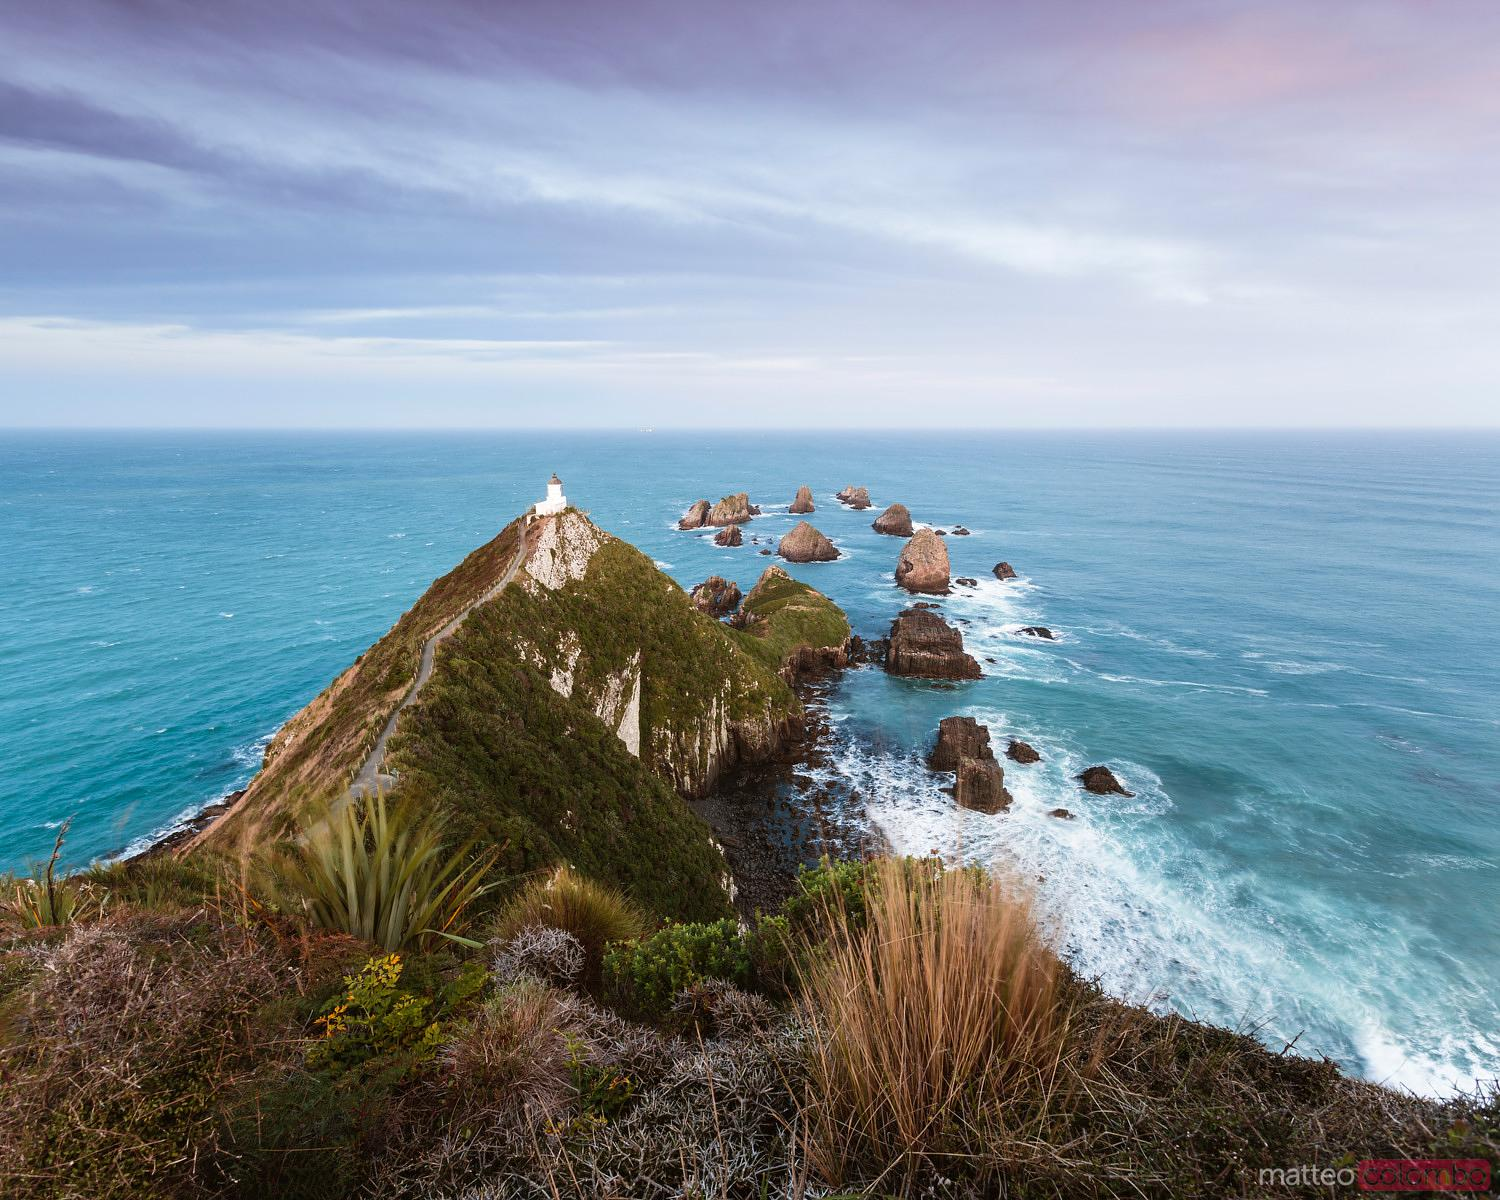 Matteo Colombo Travel Photography | Nugget point lighthouse